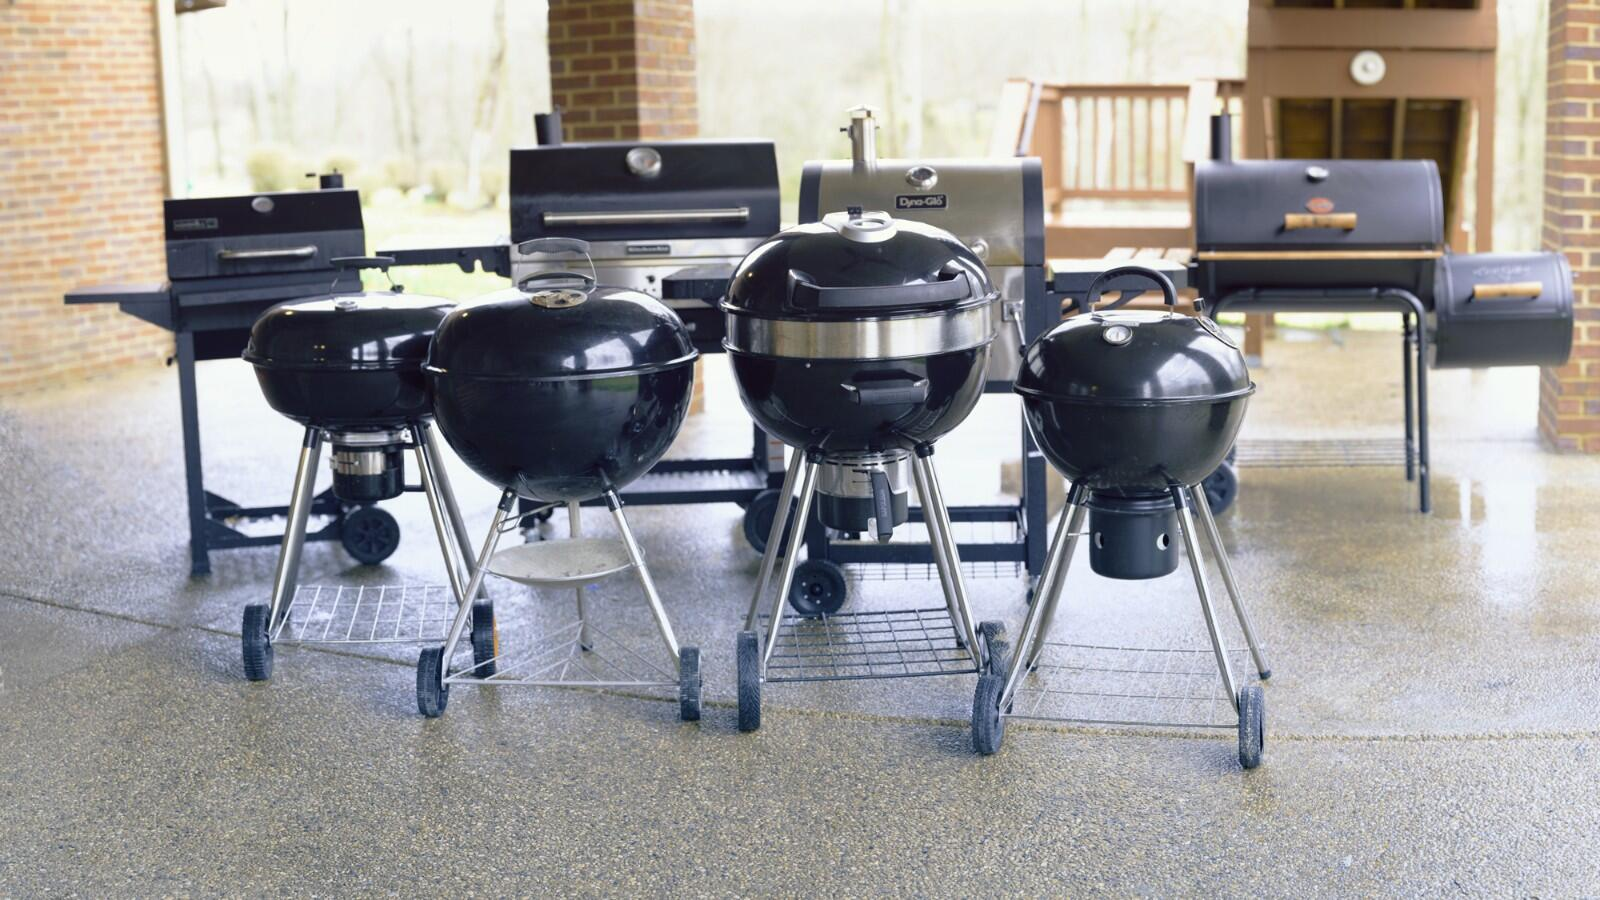 Best charcoal grills for 2021